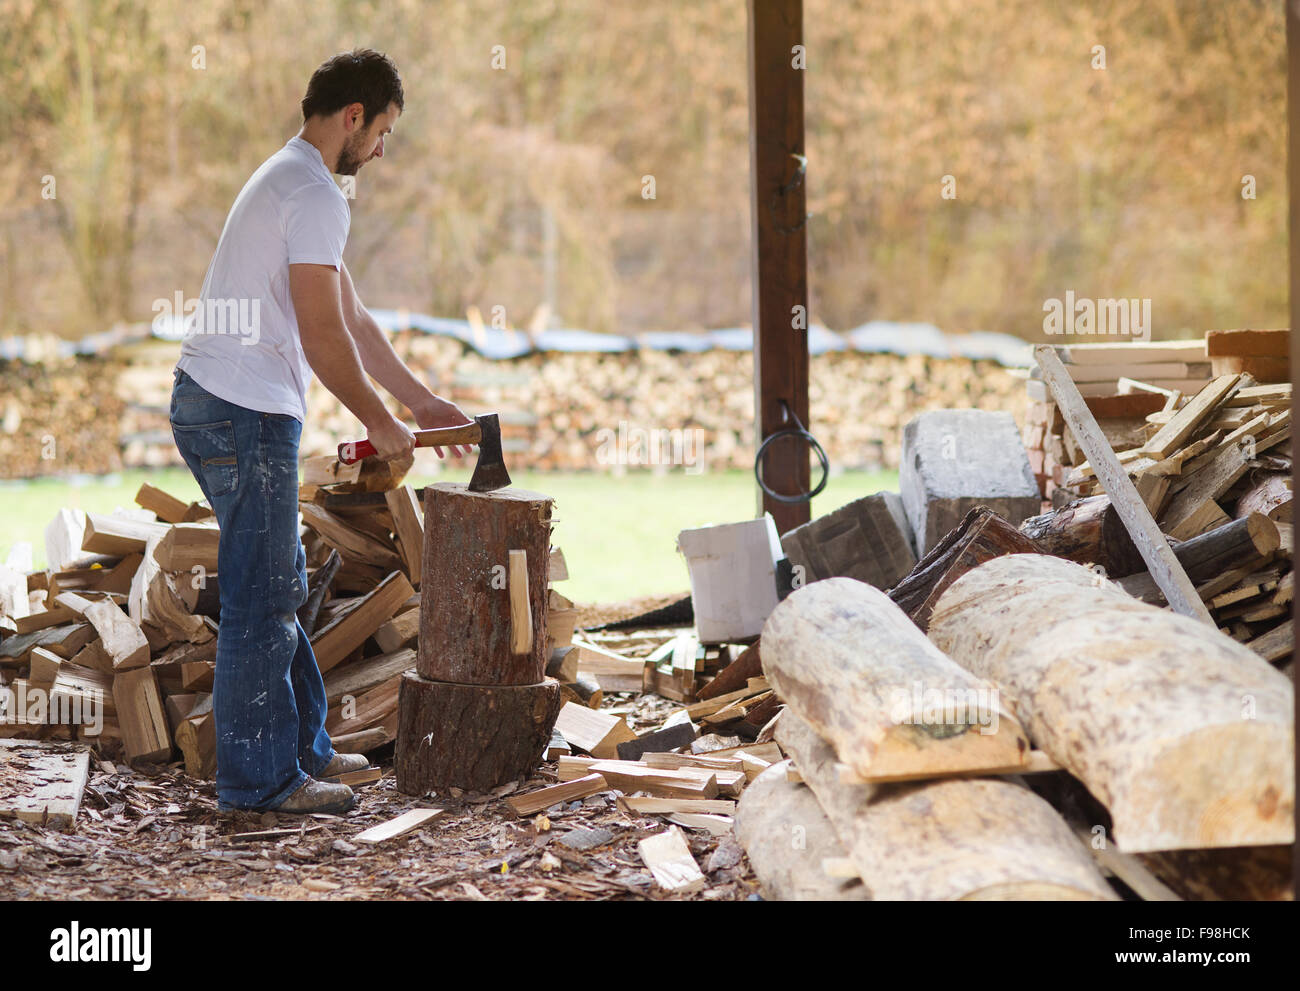 Young man chopping wood in his backyard - Stock Image